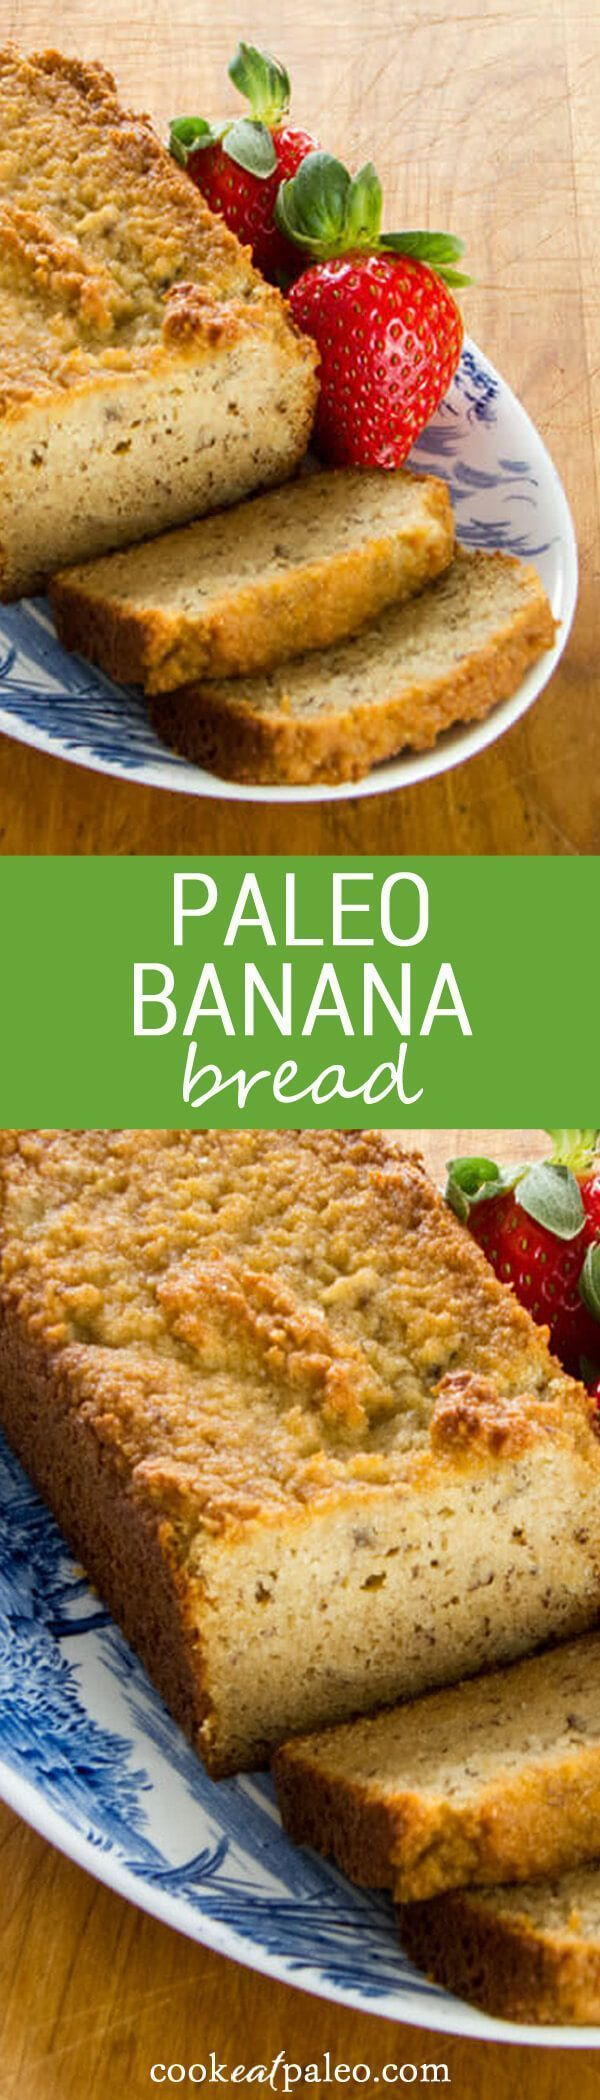 A paleo banana bread recipe that is gluten-free, grain-free, dairy-free, and refined sugar-free. Easy and quick to make! #bananabread #recipes #paleo